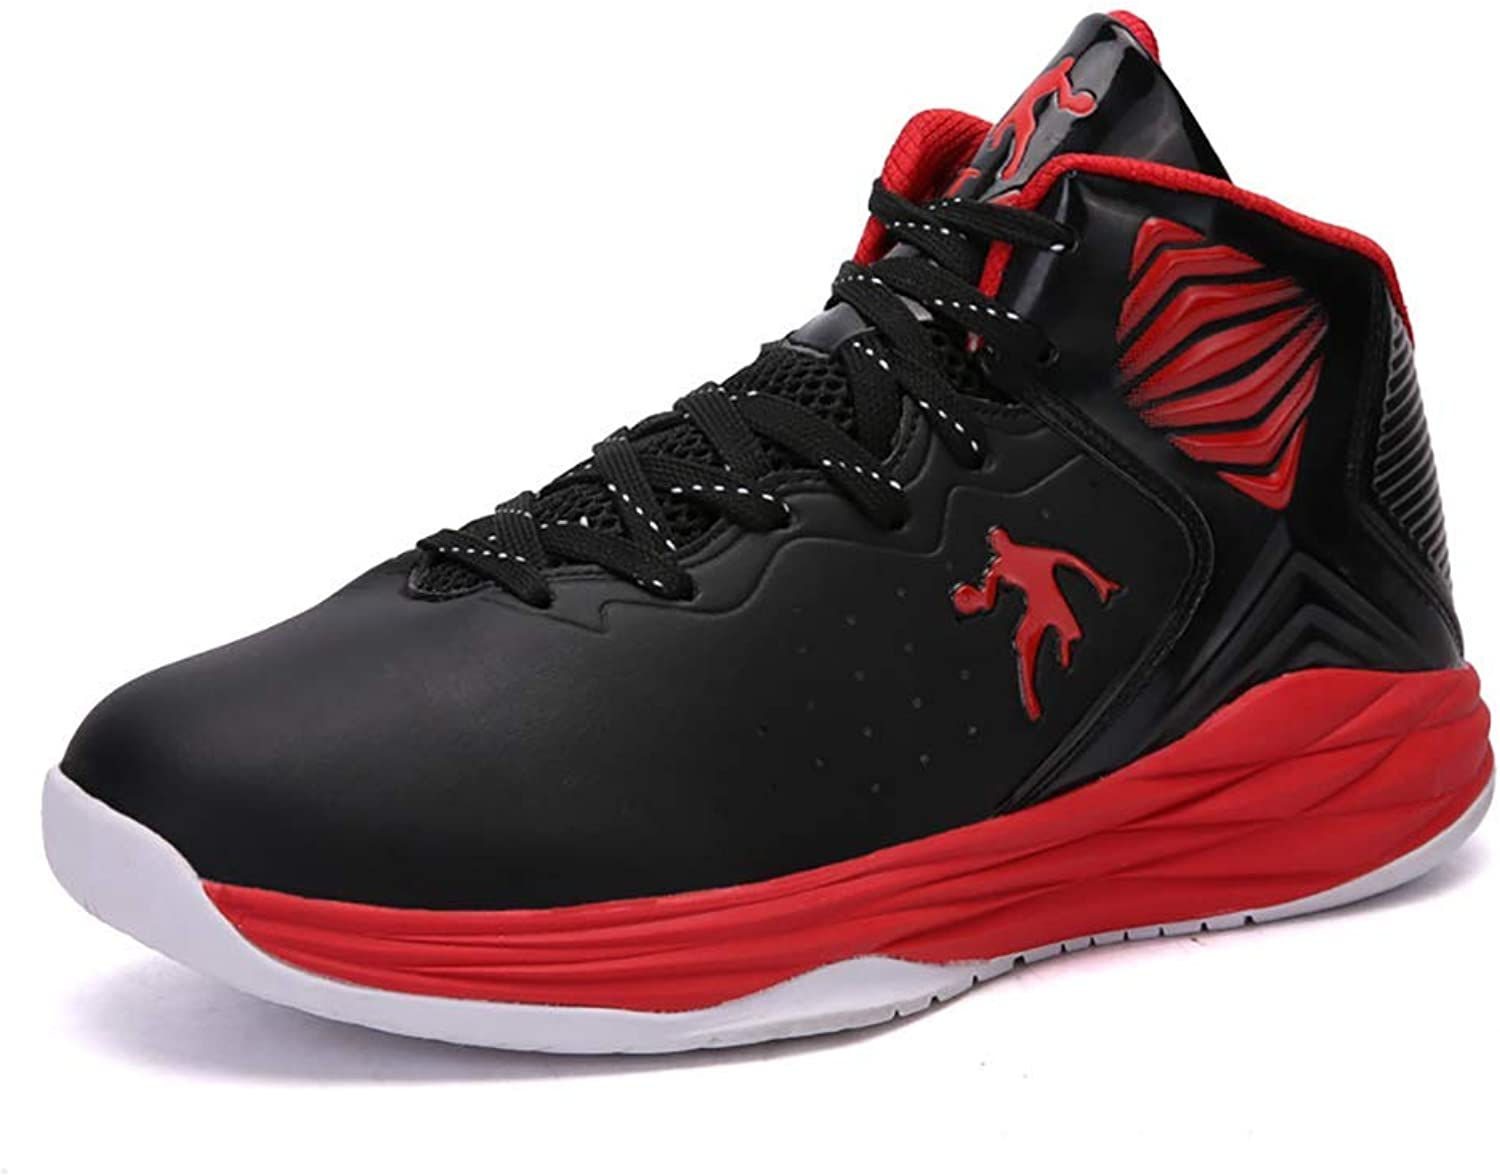 Basketball shoes Men's Basketball shoes Performance Push Up Basketball Boots Trainer High-top Fashion Sneakers Lightweight Breathable Running shoes